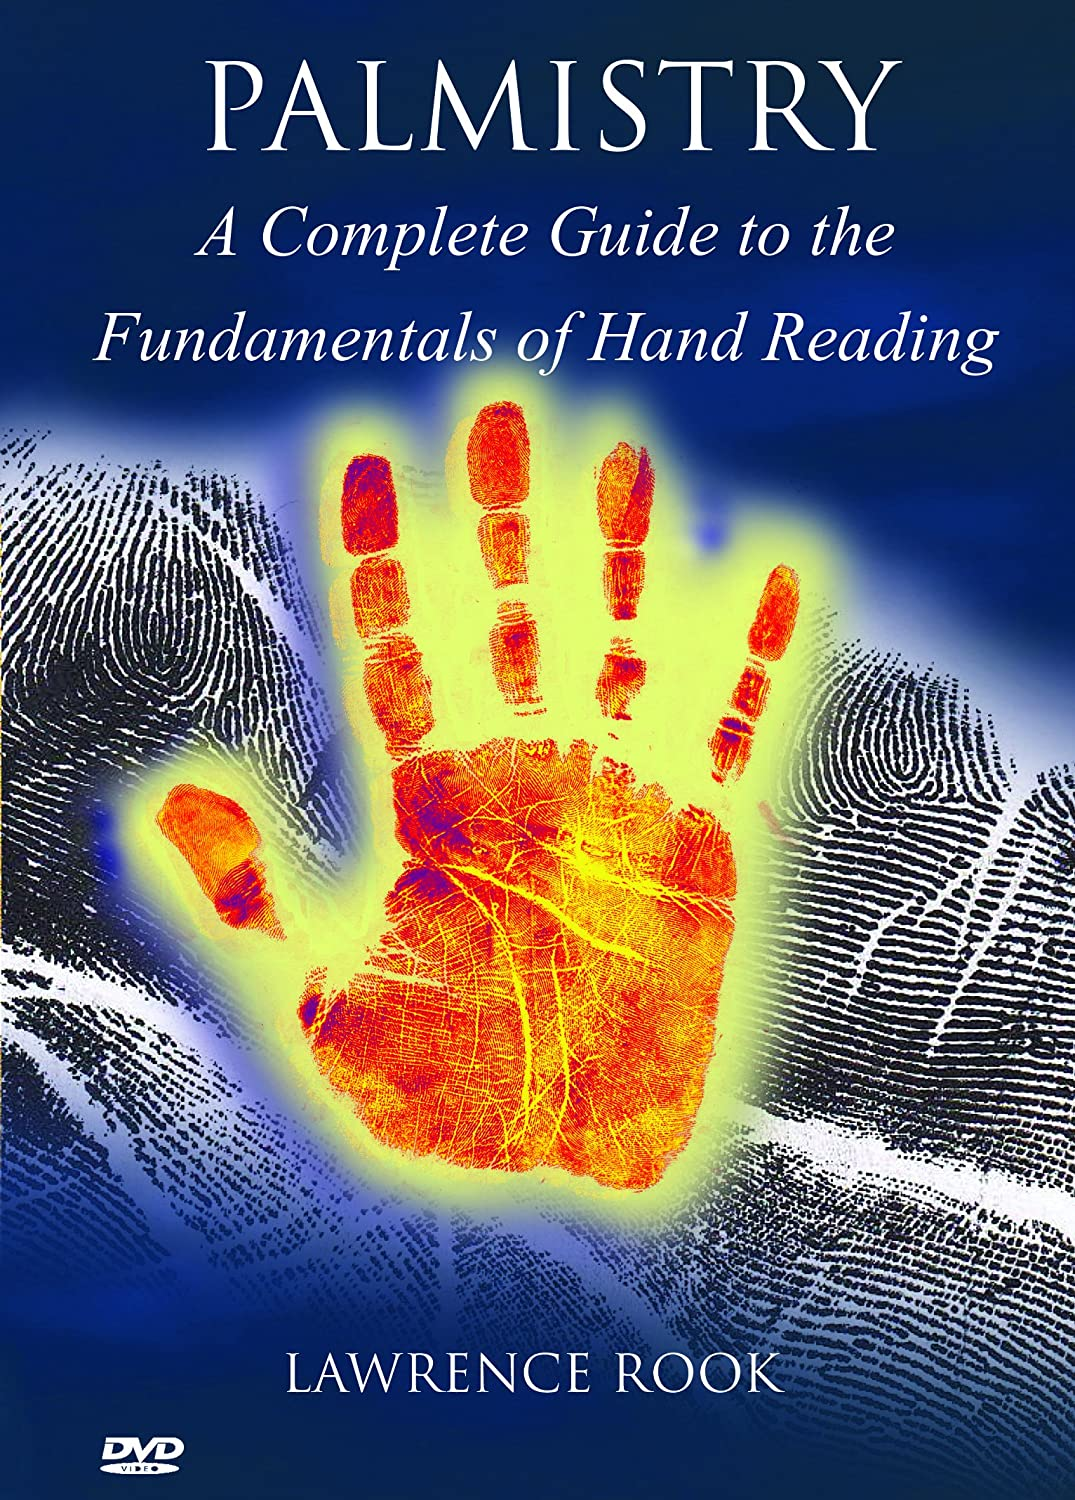 Palmistry DVD - Feature length with 200+ images 91Hg72XtFkL._SL1500_